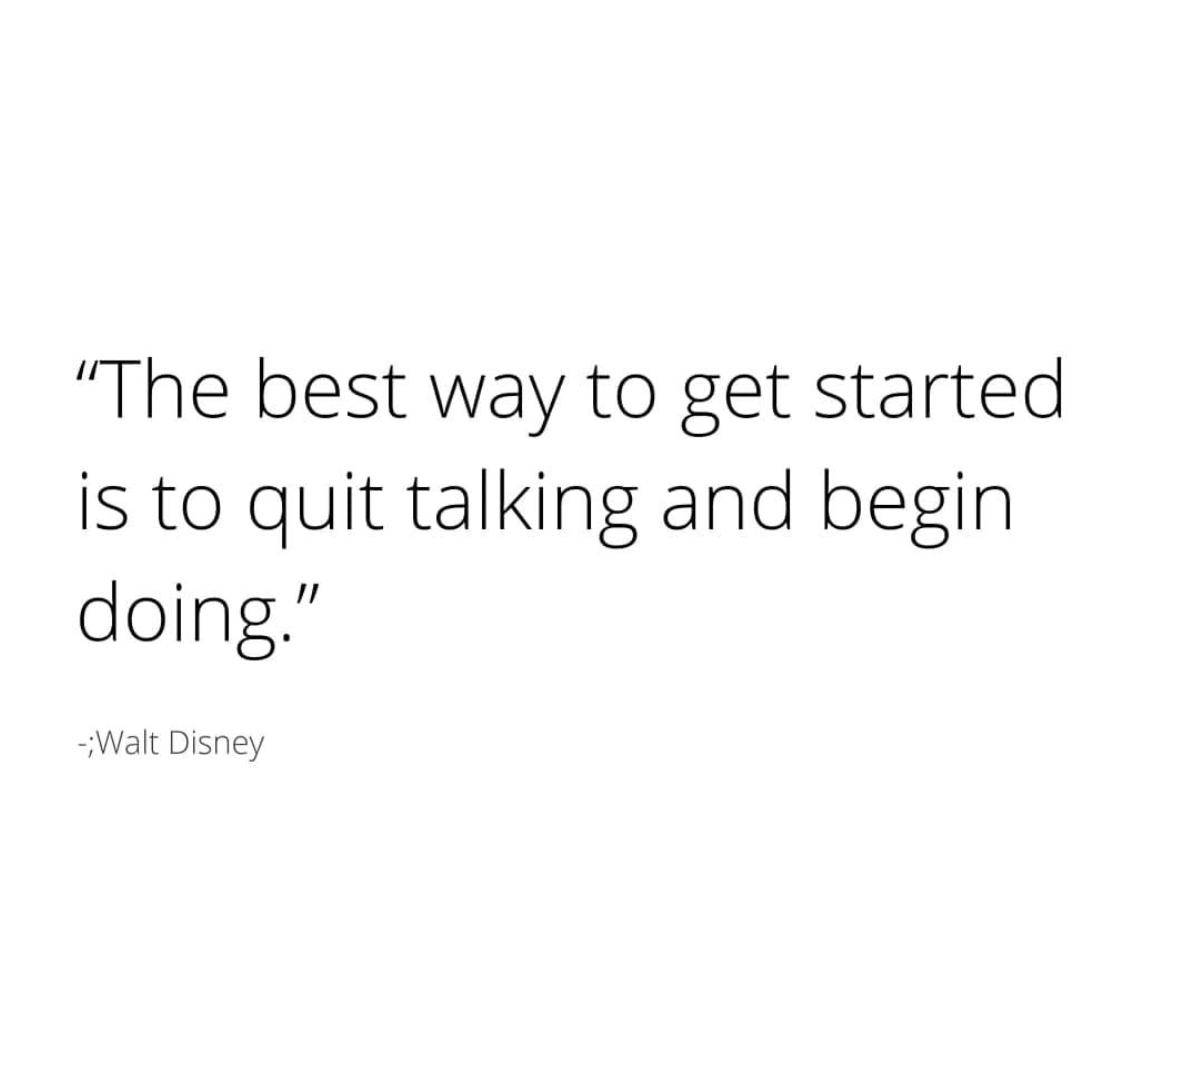 [Image] The best way to get started is to quit talking and begin doing